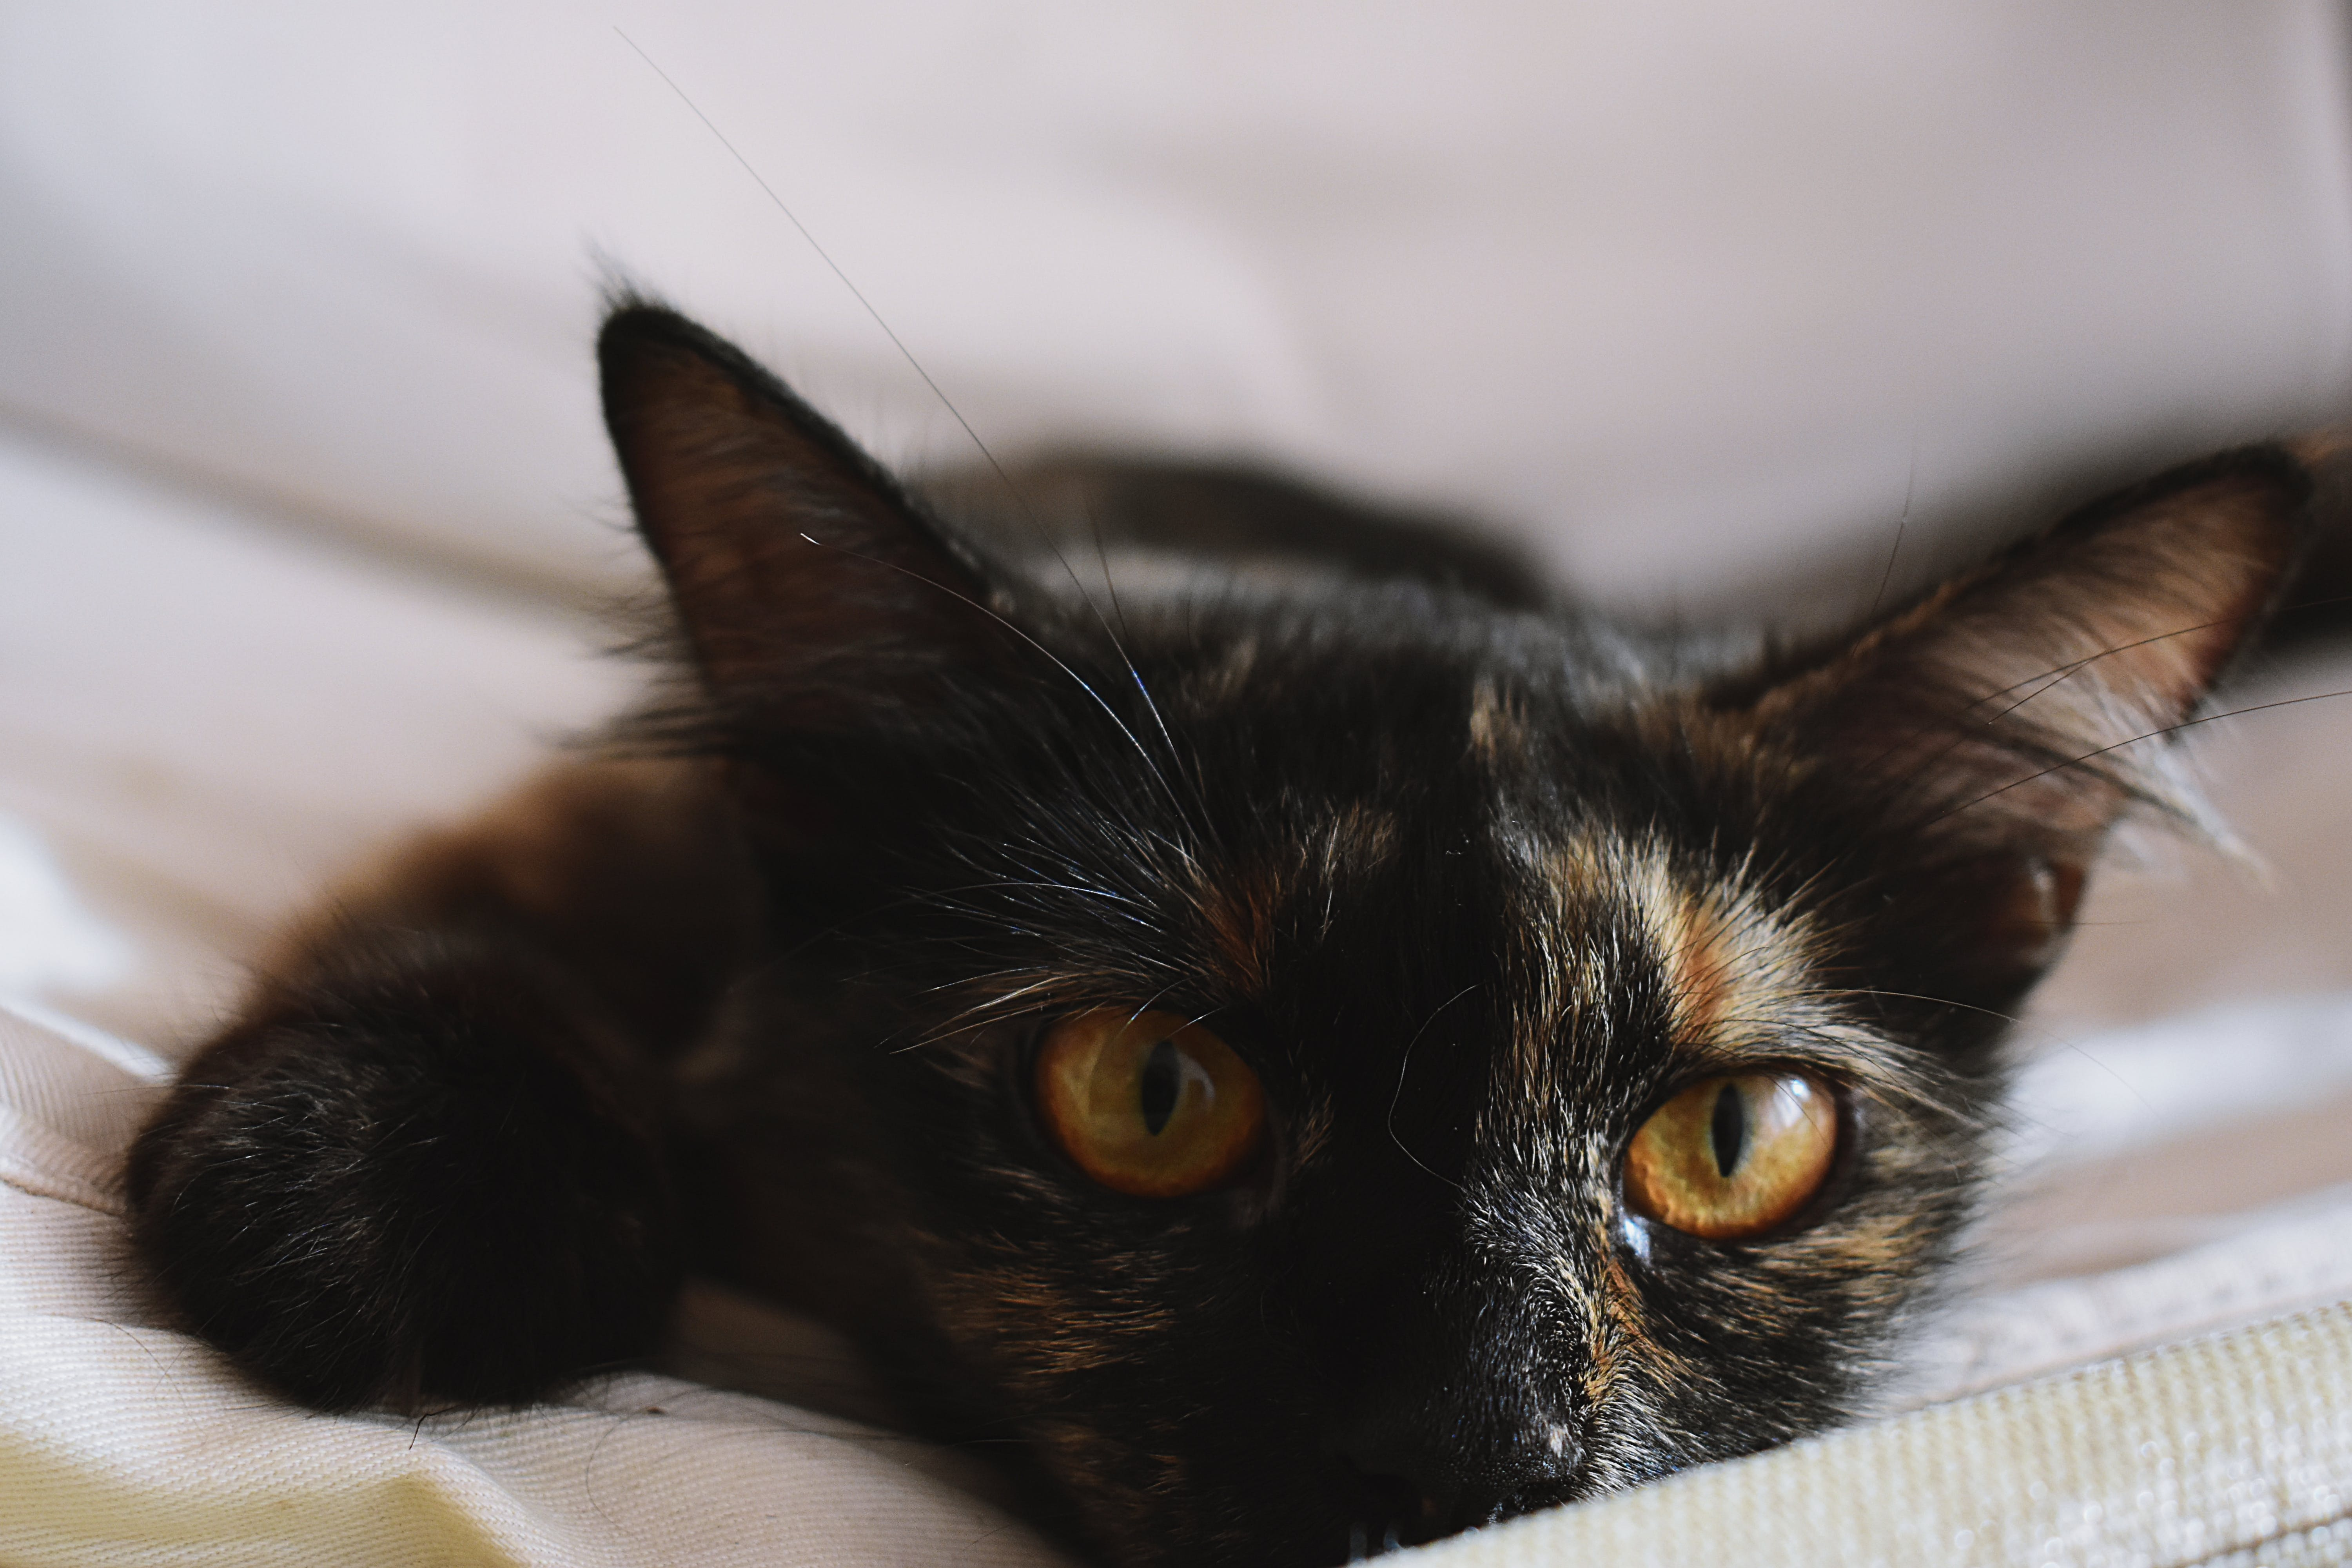 Selected-focus Photo of Black Kitten Leaning on White Mattress